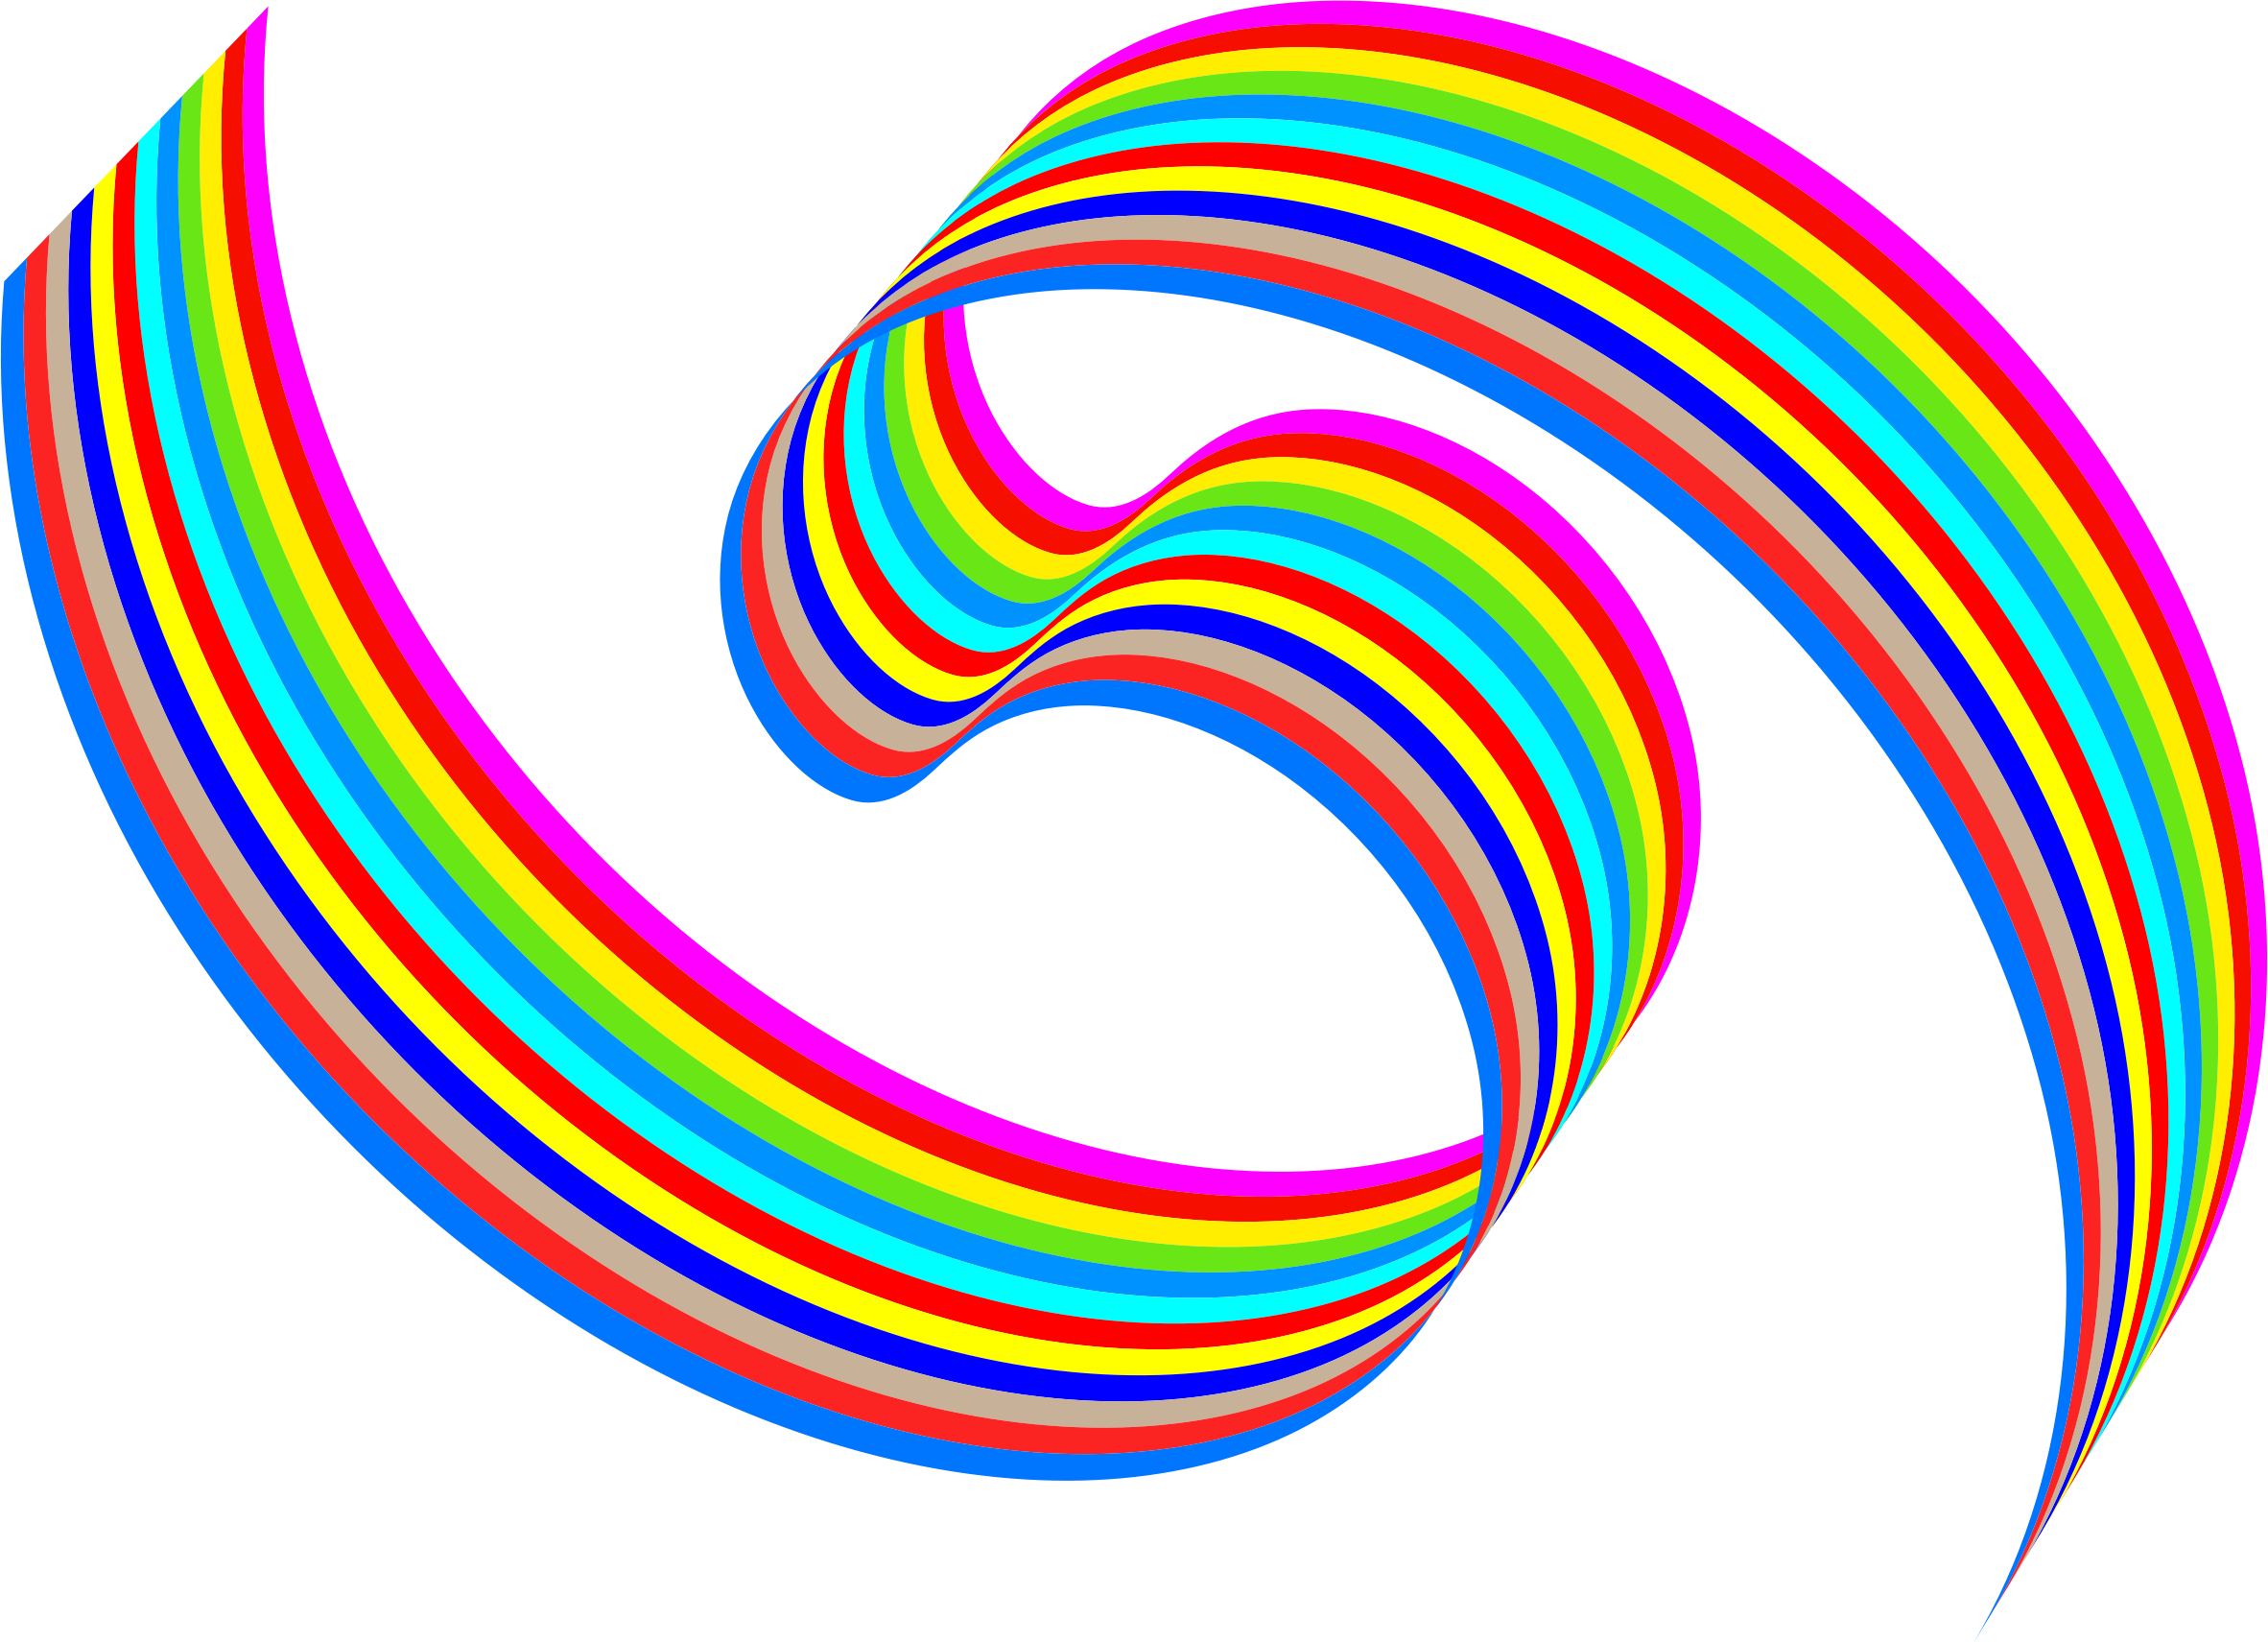 Wavy rainbow ribbon big. Waves clipart wipeout